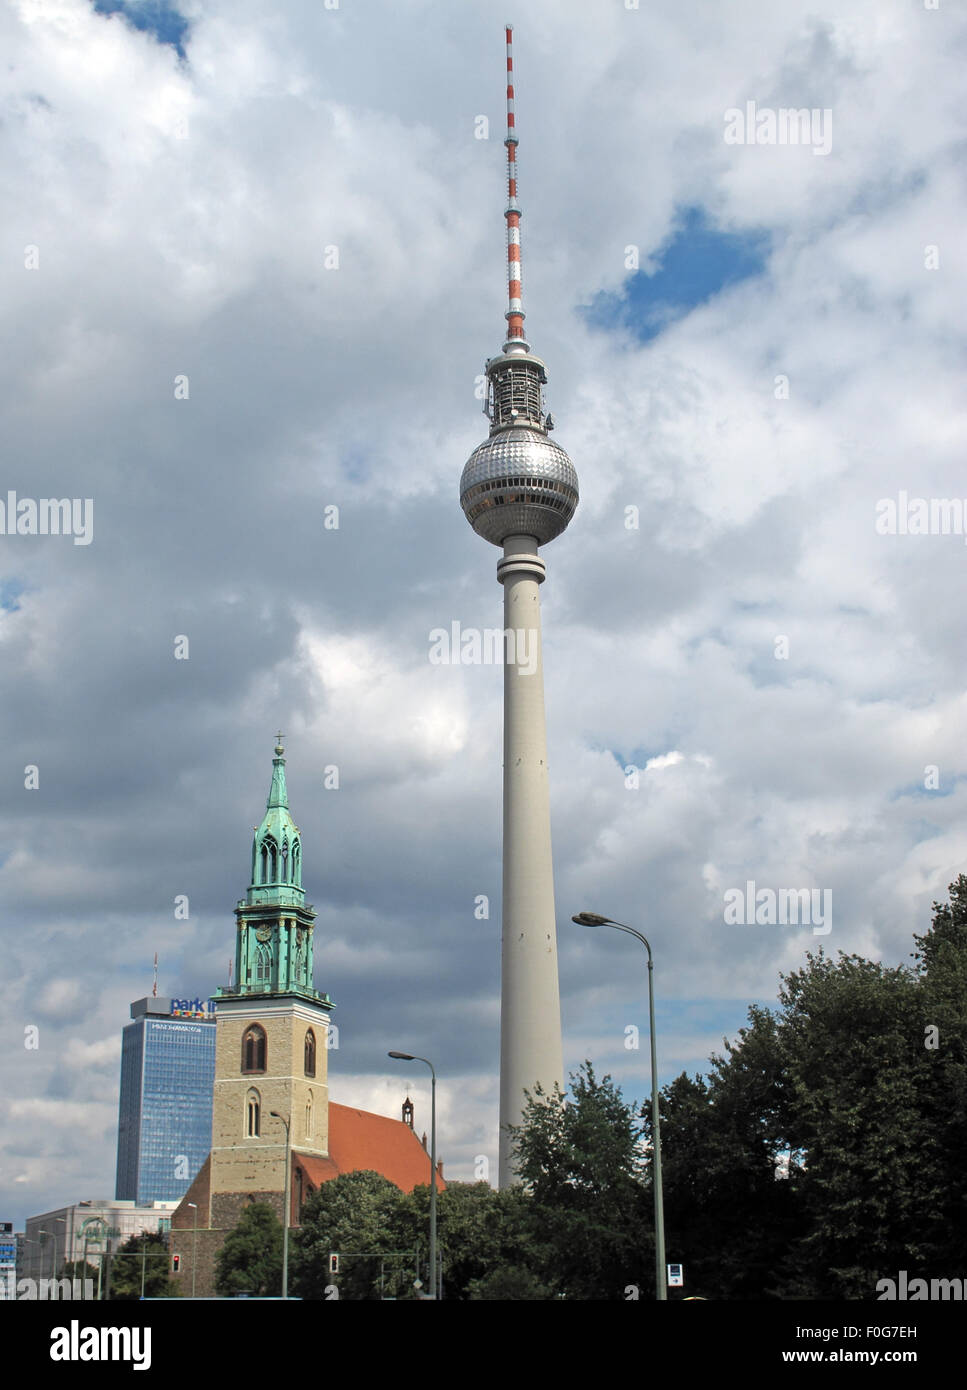 new,old,and,sky,line,skyline,Alexanderplatz,church,summer,ball,German Democratic,Republic,transmit,transmission,Marienkirche,St,saint,Marys,marys,church,architecture,bellfry,broadcast,cityscape,GDR,european,landmark,building,concrete,modern,radio,german,germany,sky,sun,sunny,television,to,GoTonySmith,Deutsche,Deutschland,Buy Pictures of,Buy Images Of